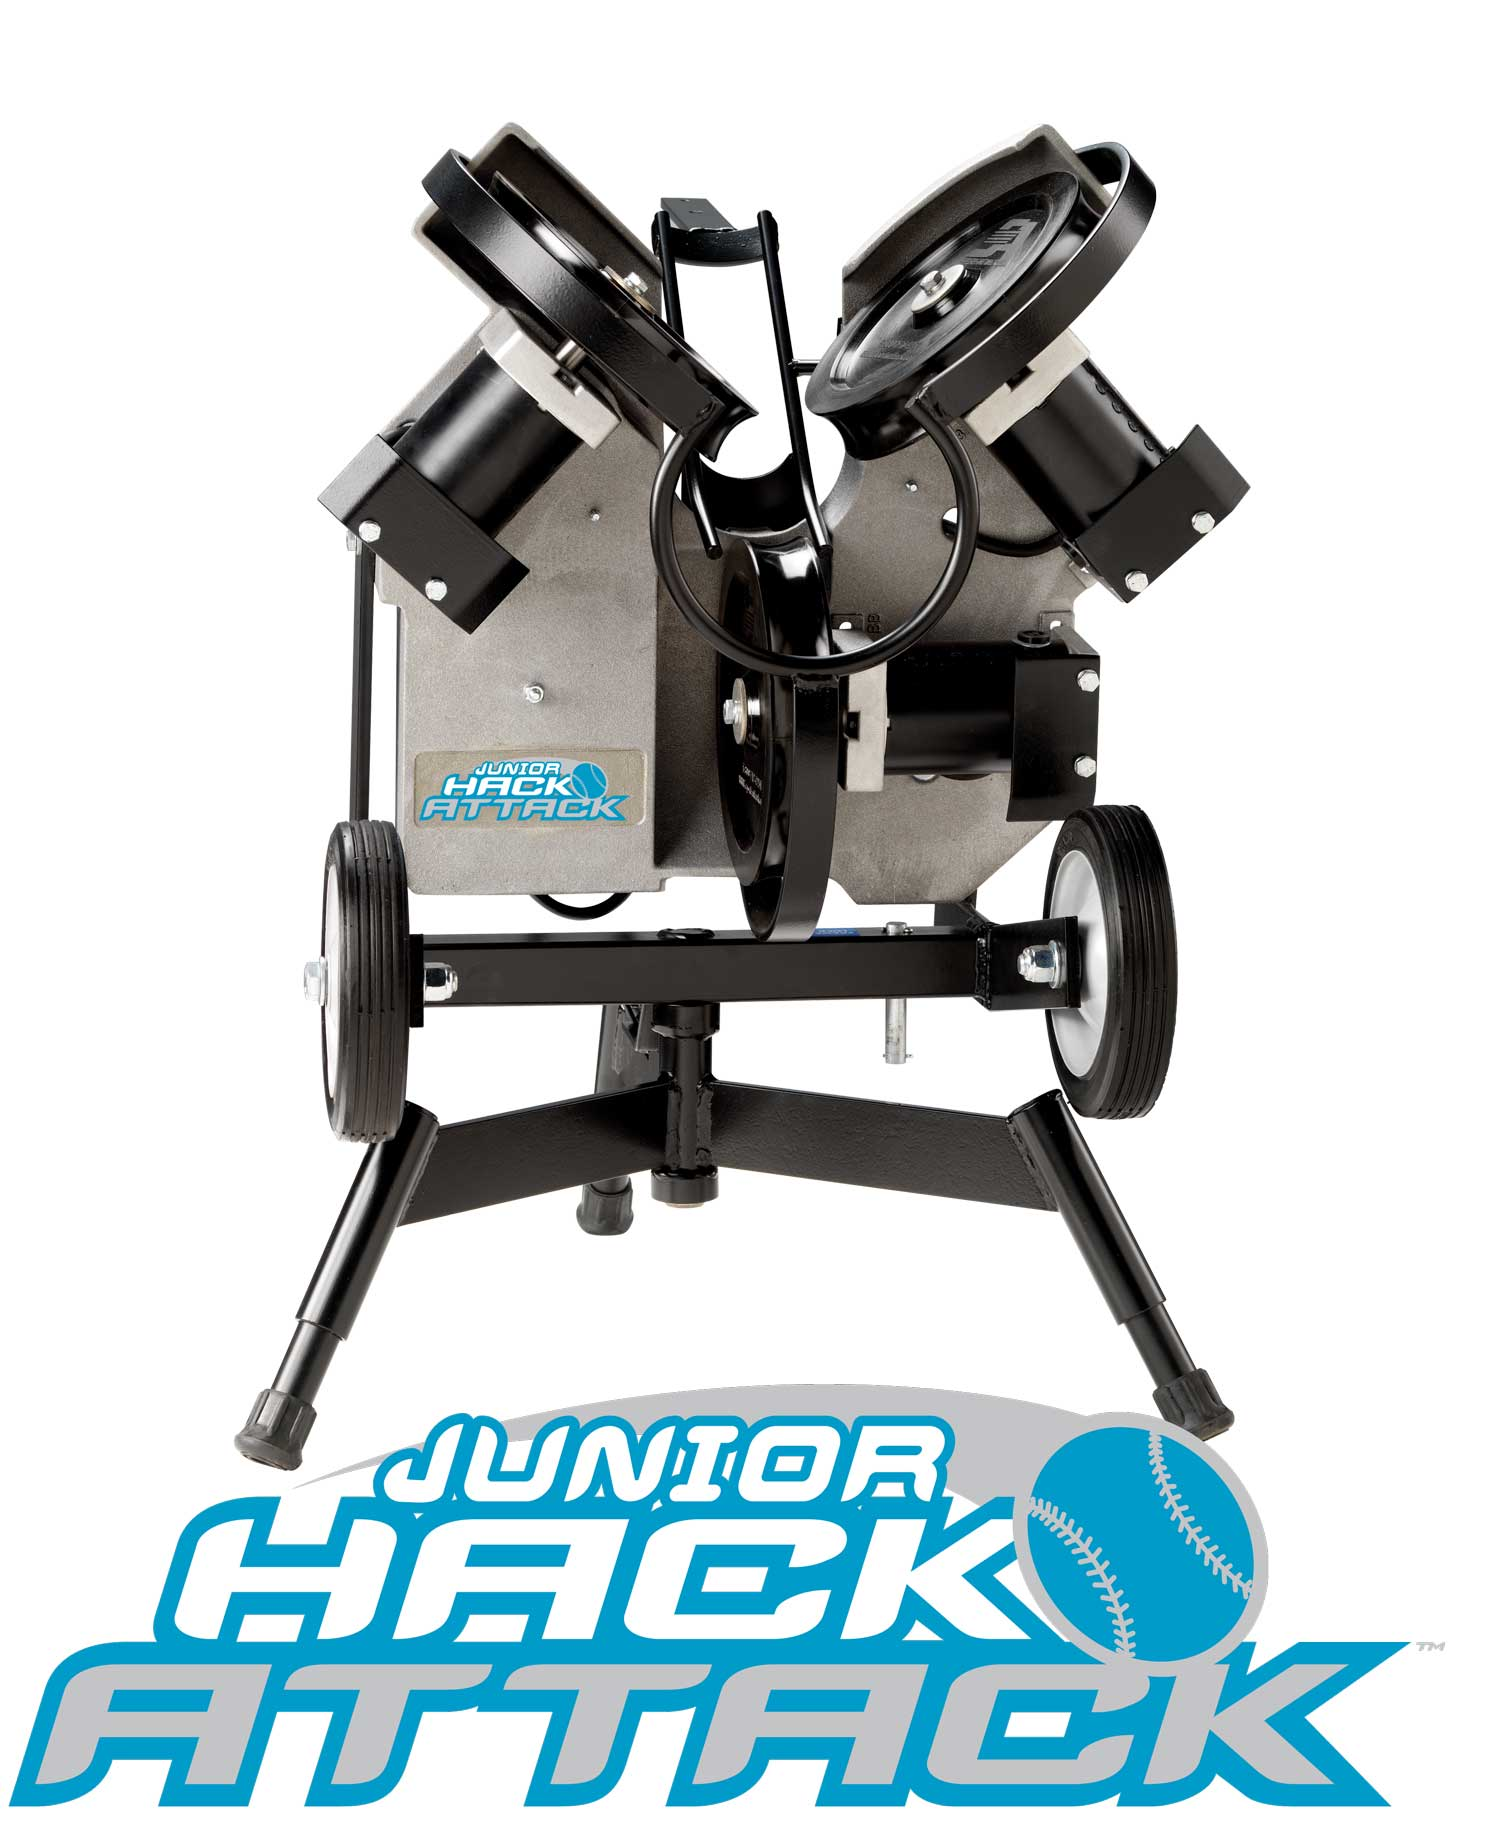 Junior Hack Attack Softball Pitching Machine by Sports Attack